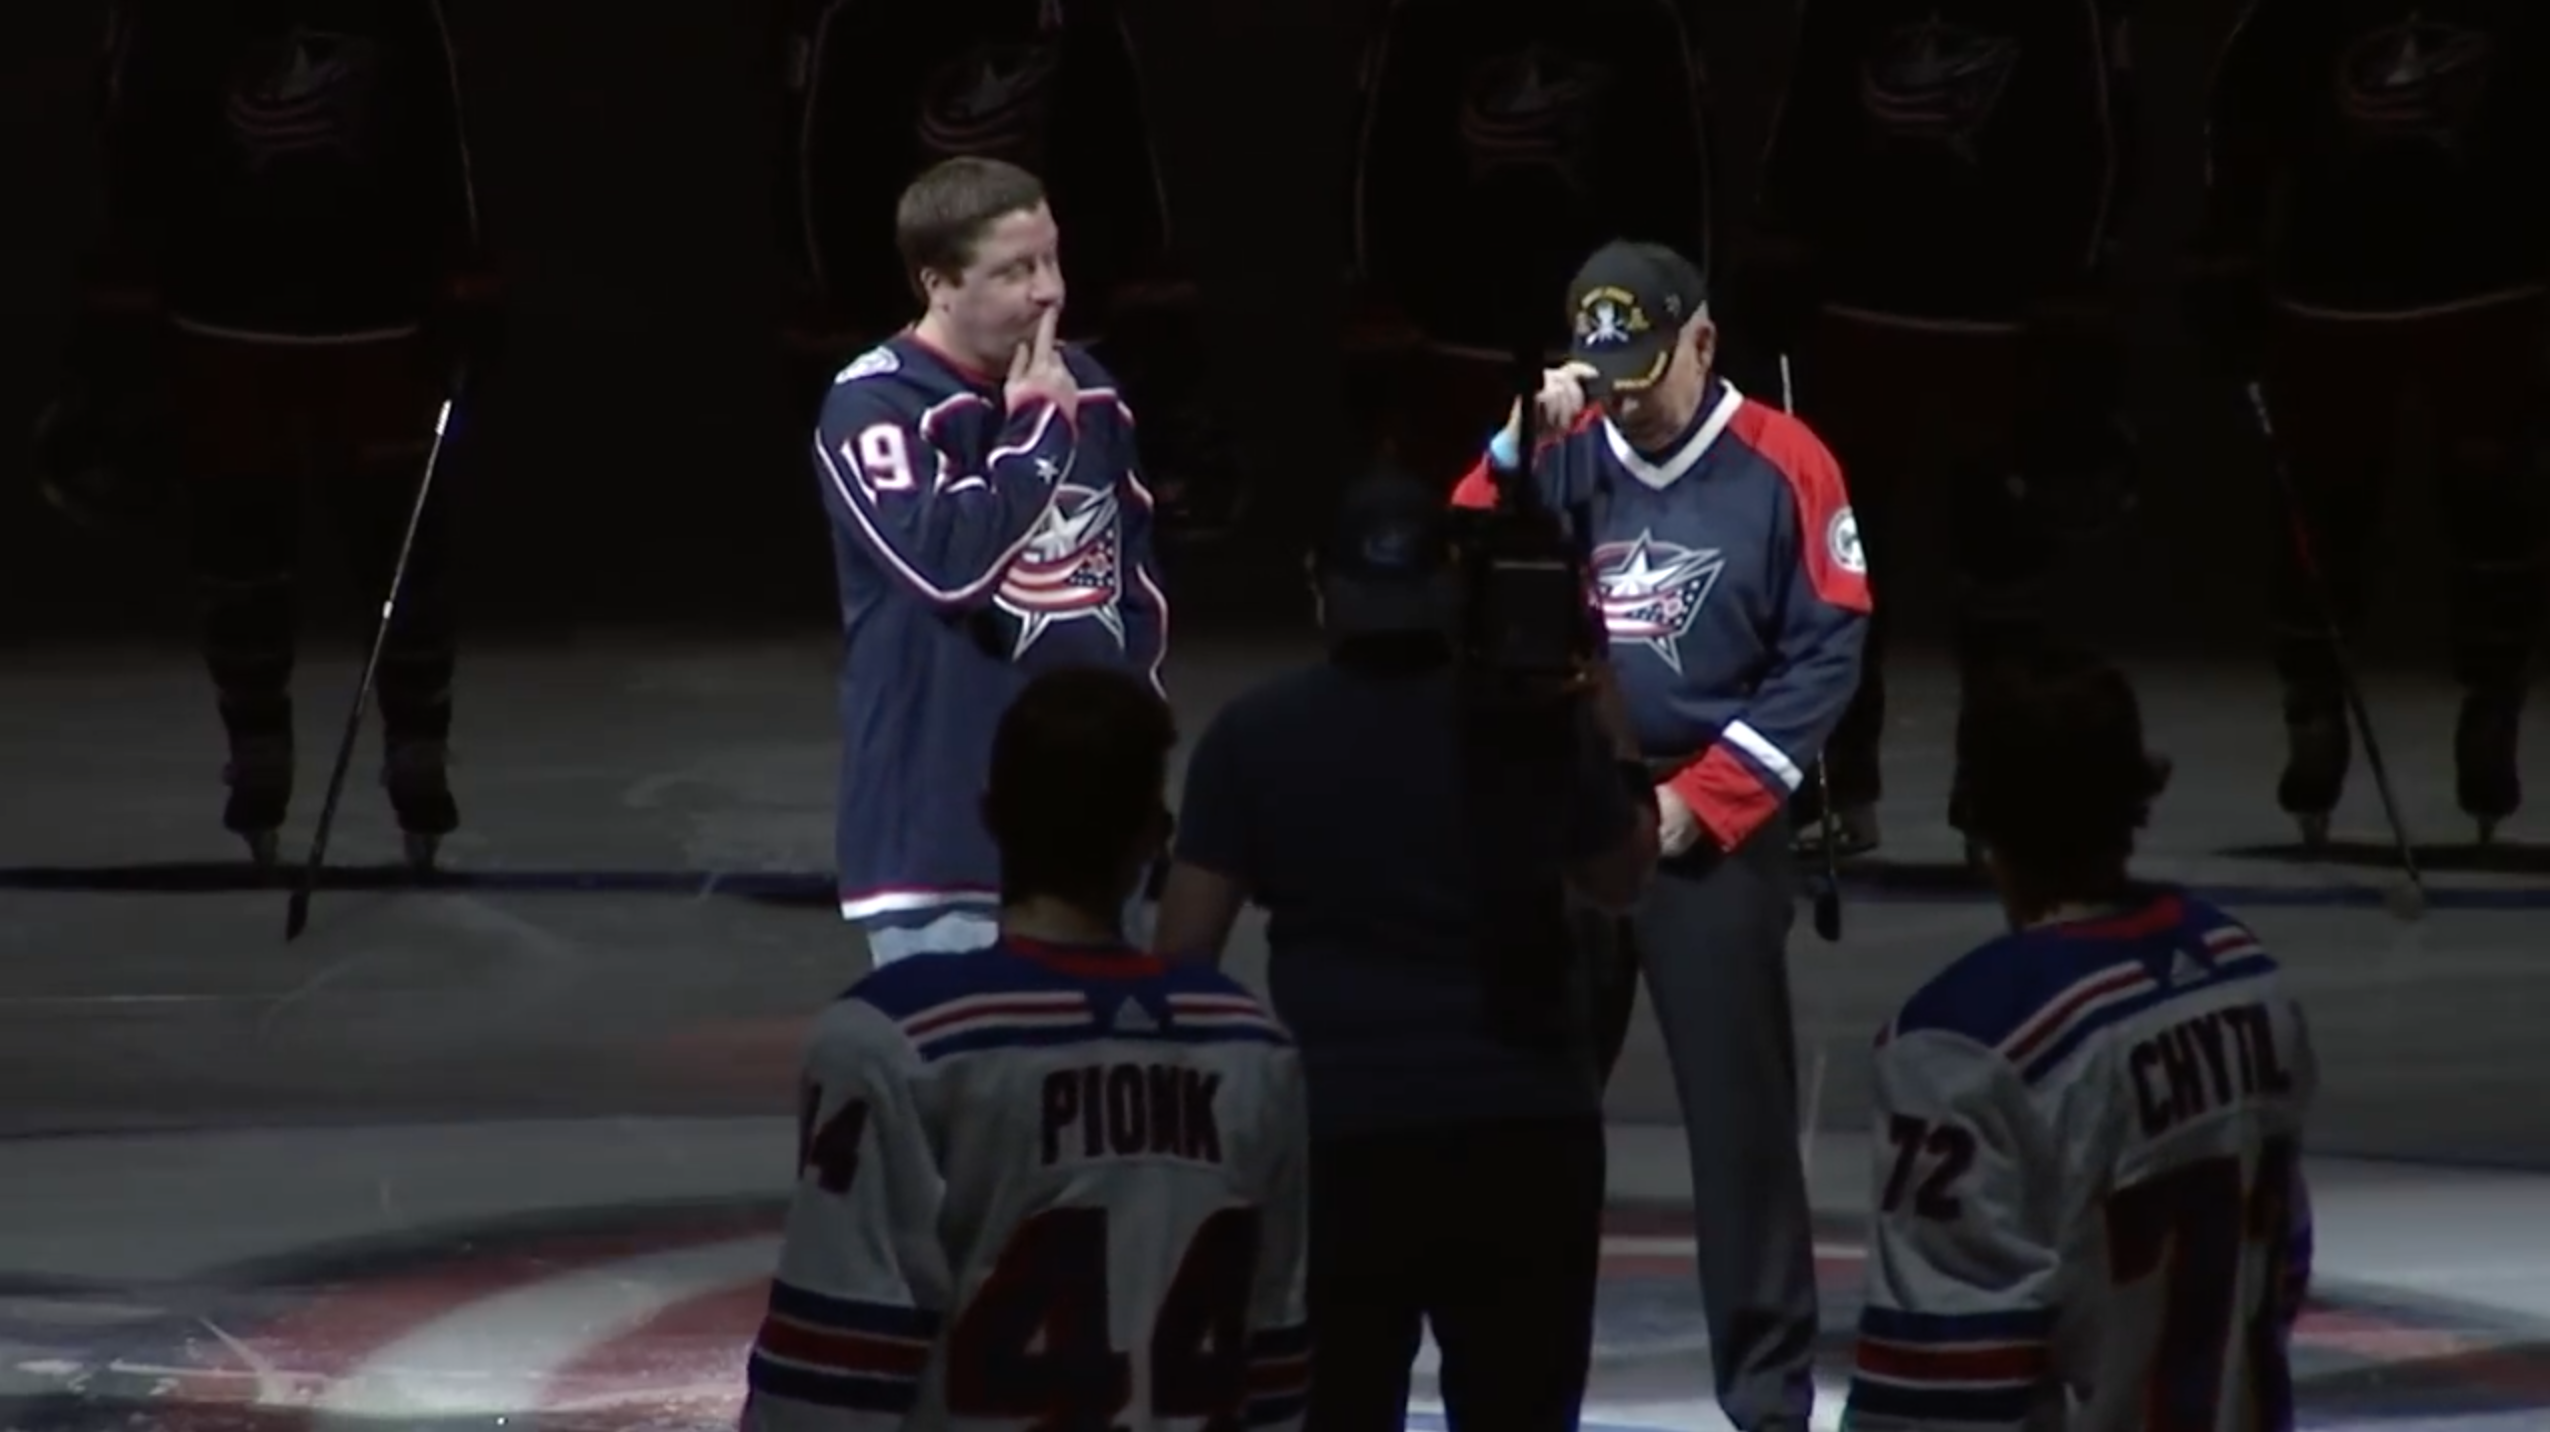 Blue Jackets fans sing national anthem after mic mishap (video) | SI com